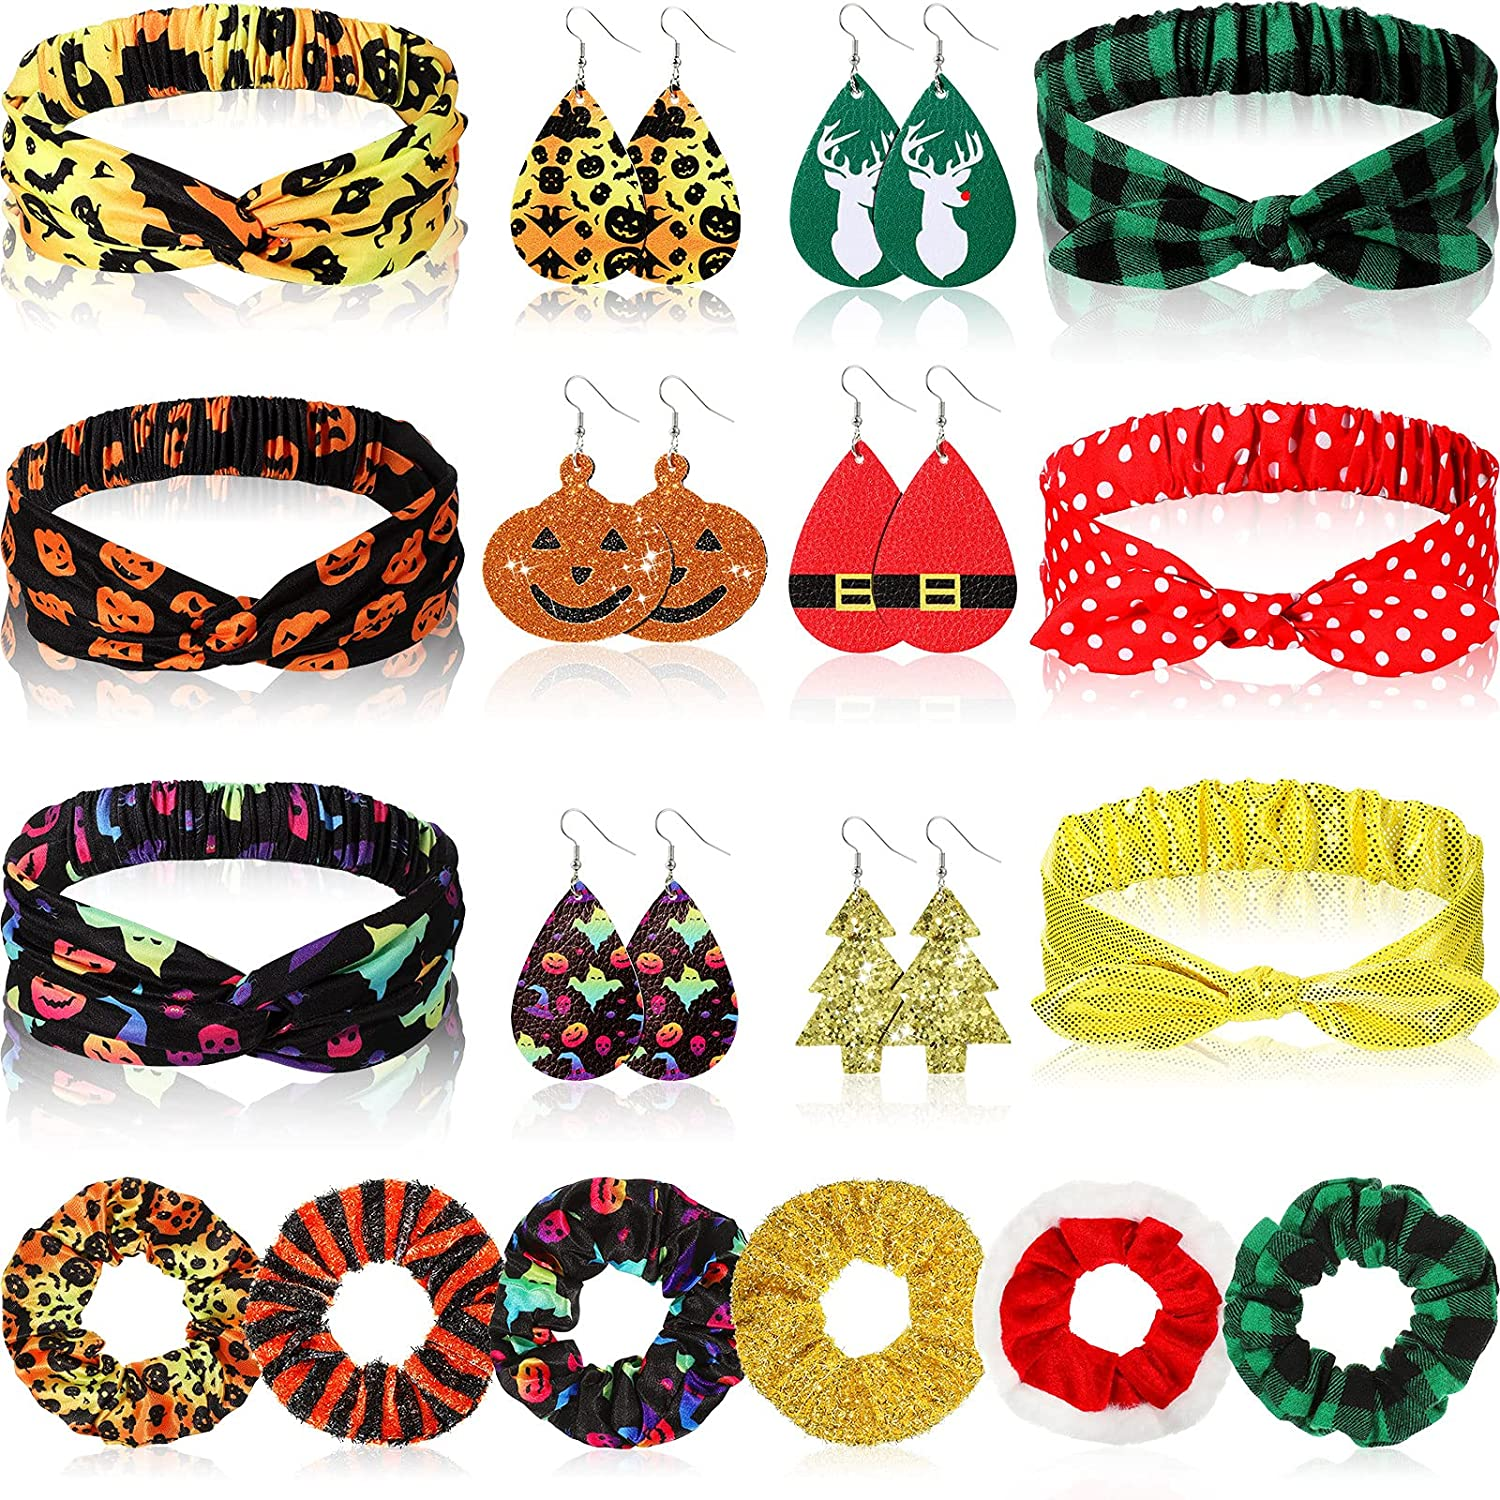 18 Pieces Halloween Christmas Faux Leather Drop Dangle Earrings Elastic Hair Scrunchies Knotted Bowknot Headbands Set for Women